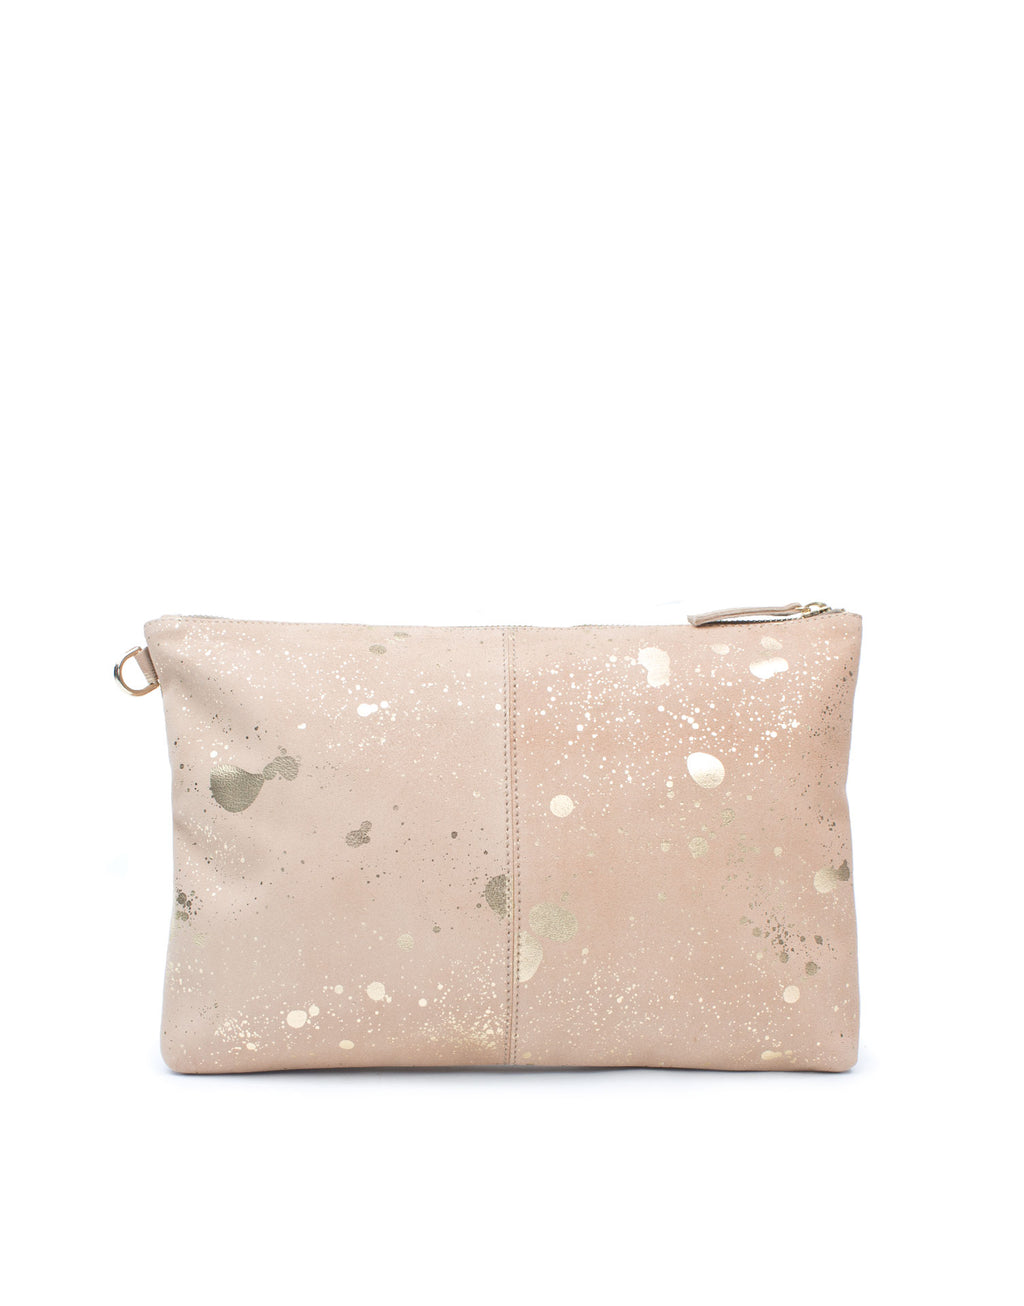 Light dusty peach soft suede clutch bag by designer Georgina Goodman. This is an amazingly useful bag with unique metallic suede upper with both splash and stripe prints.